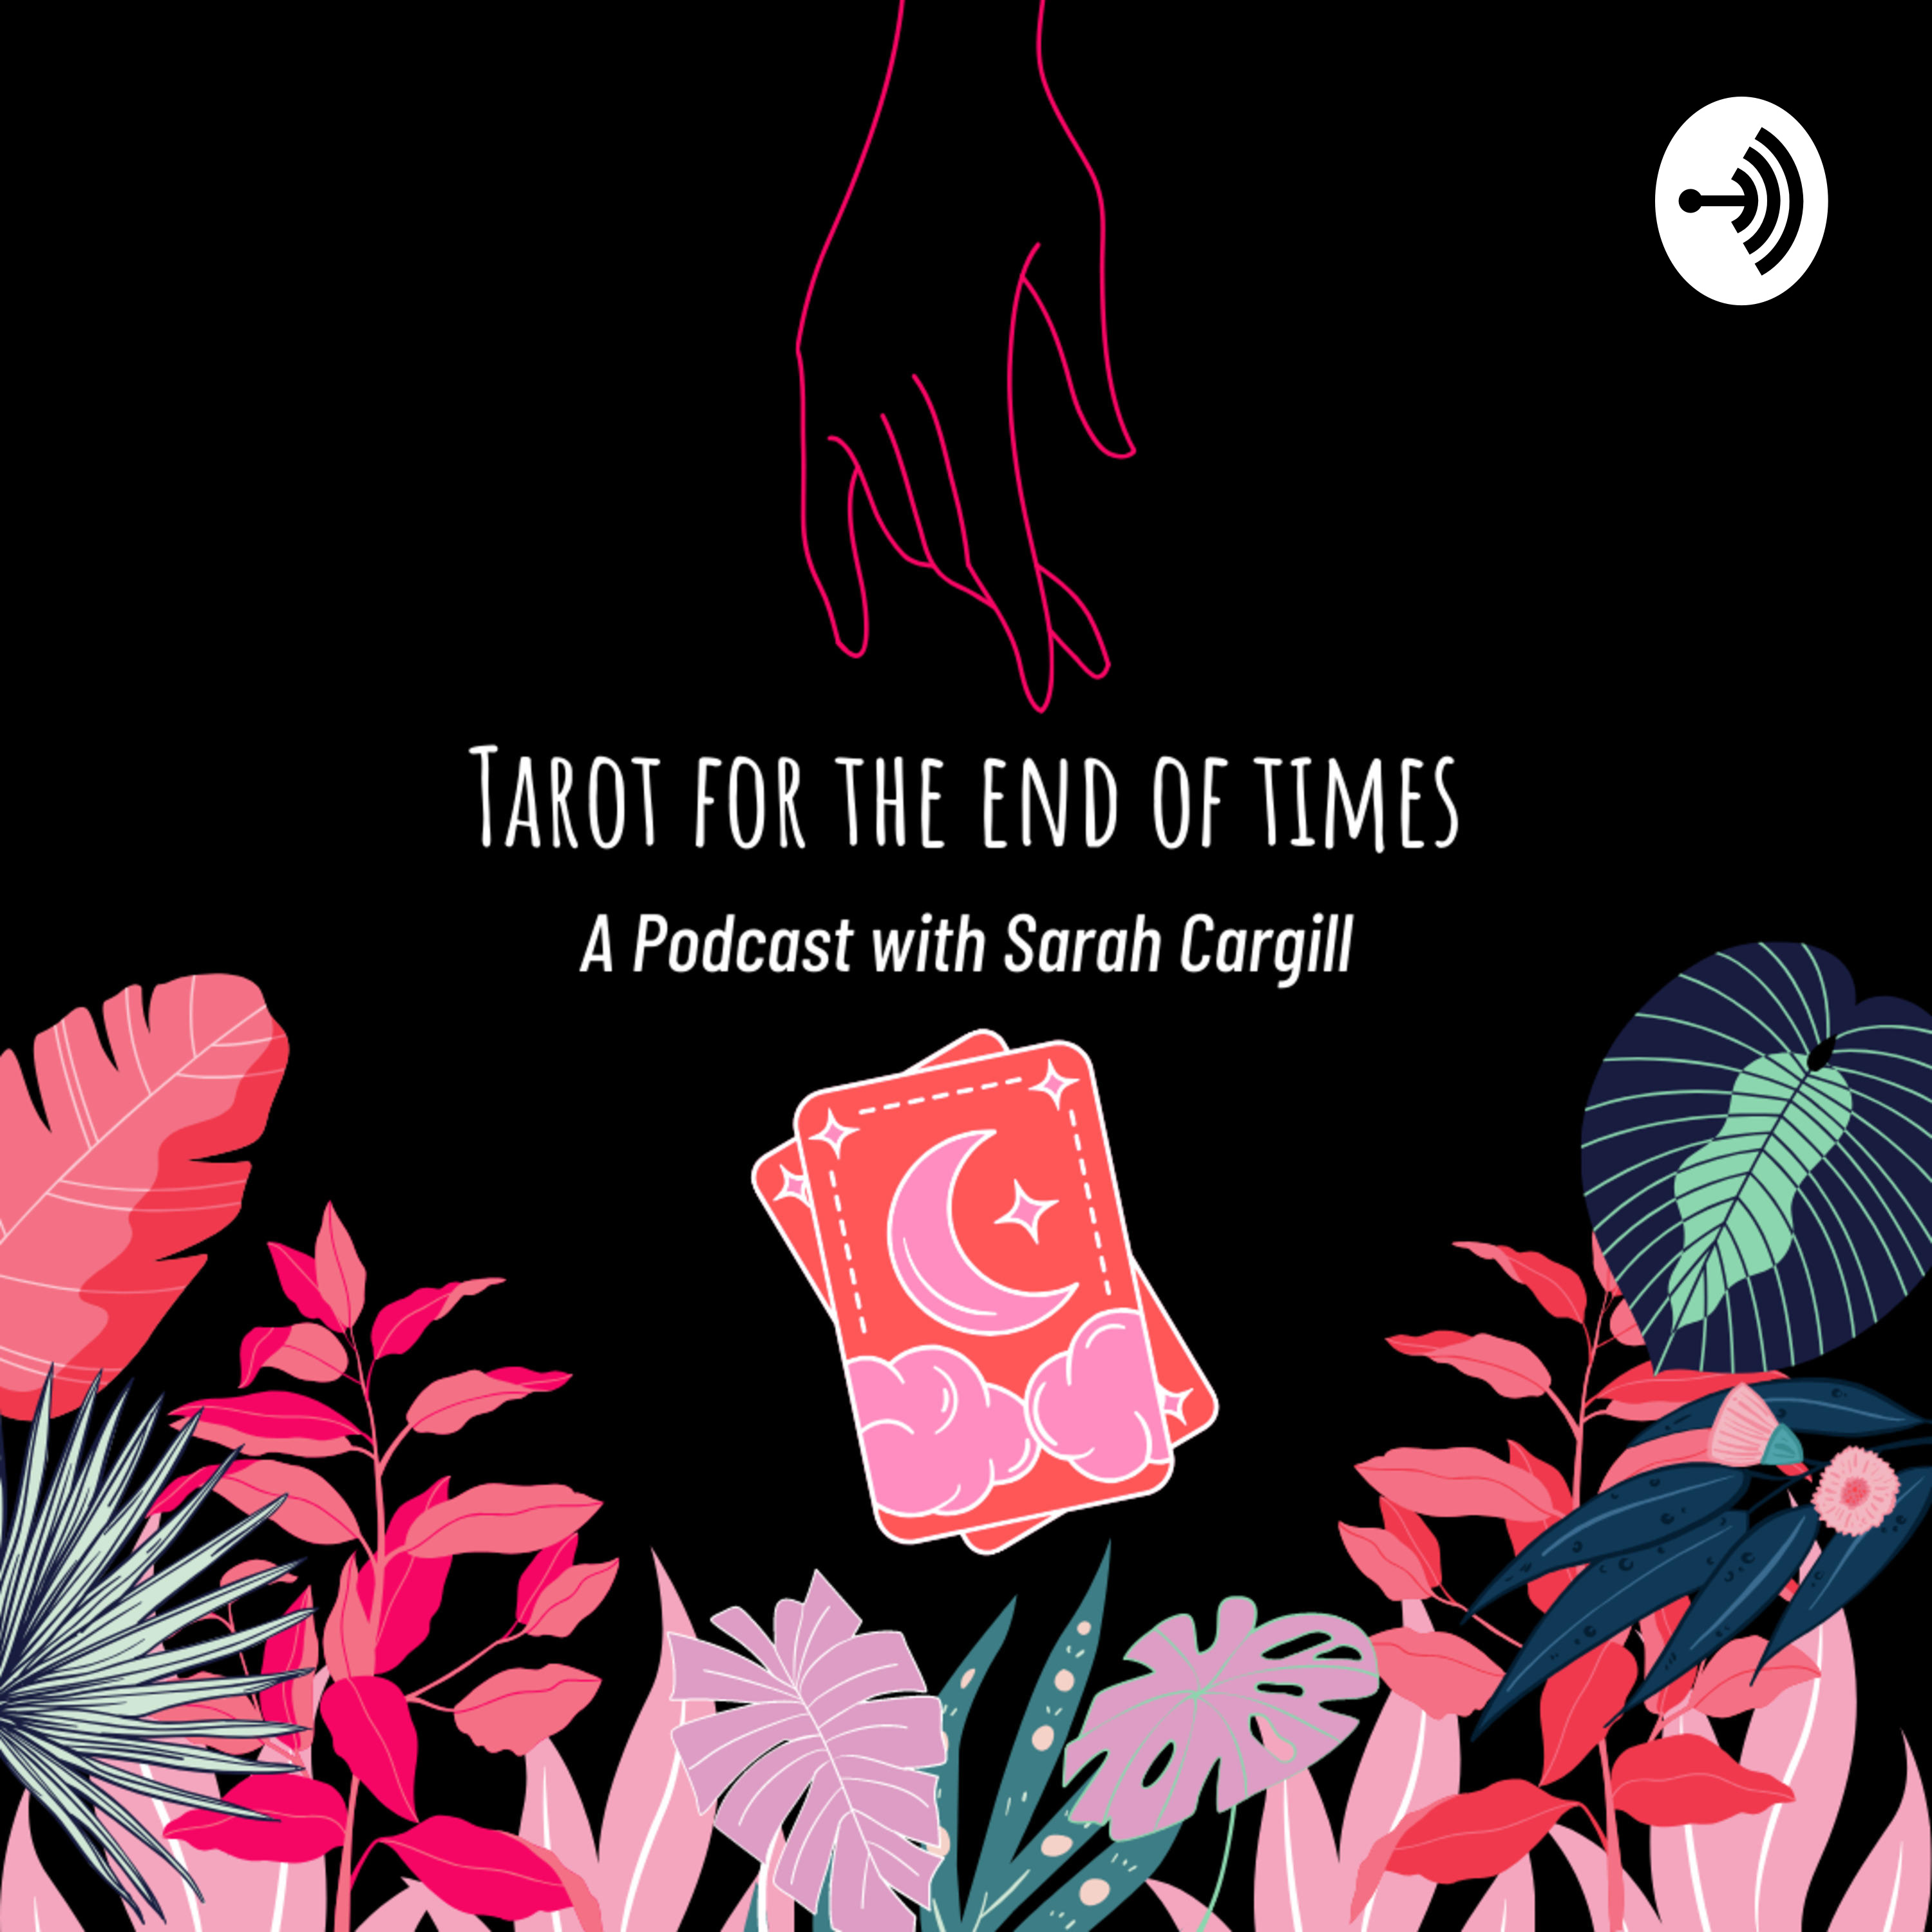 Tarot for the End of Times – A Podcast with Sarah Cargill